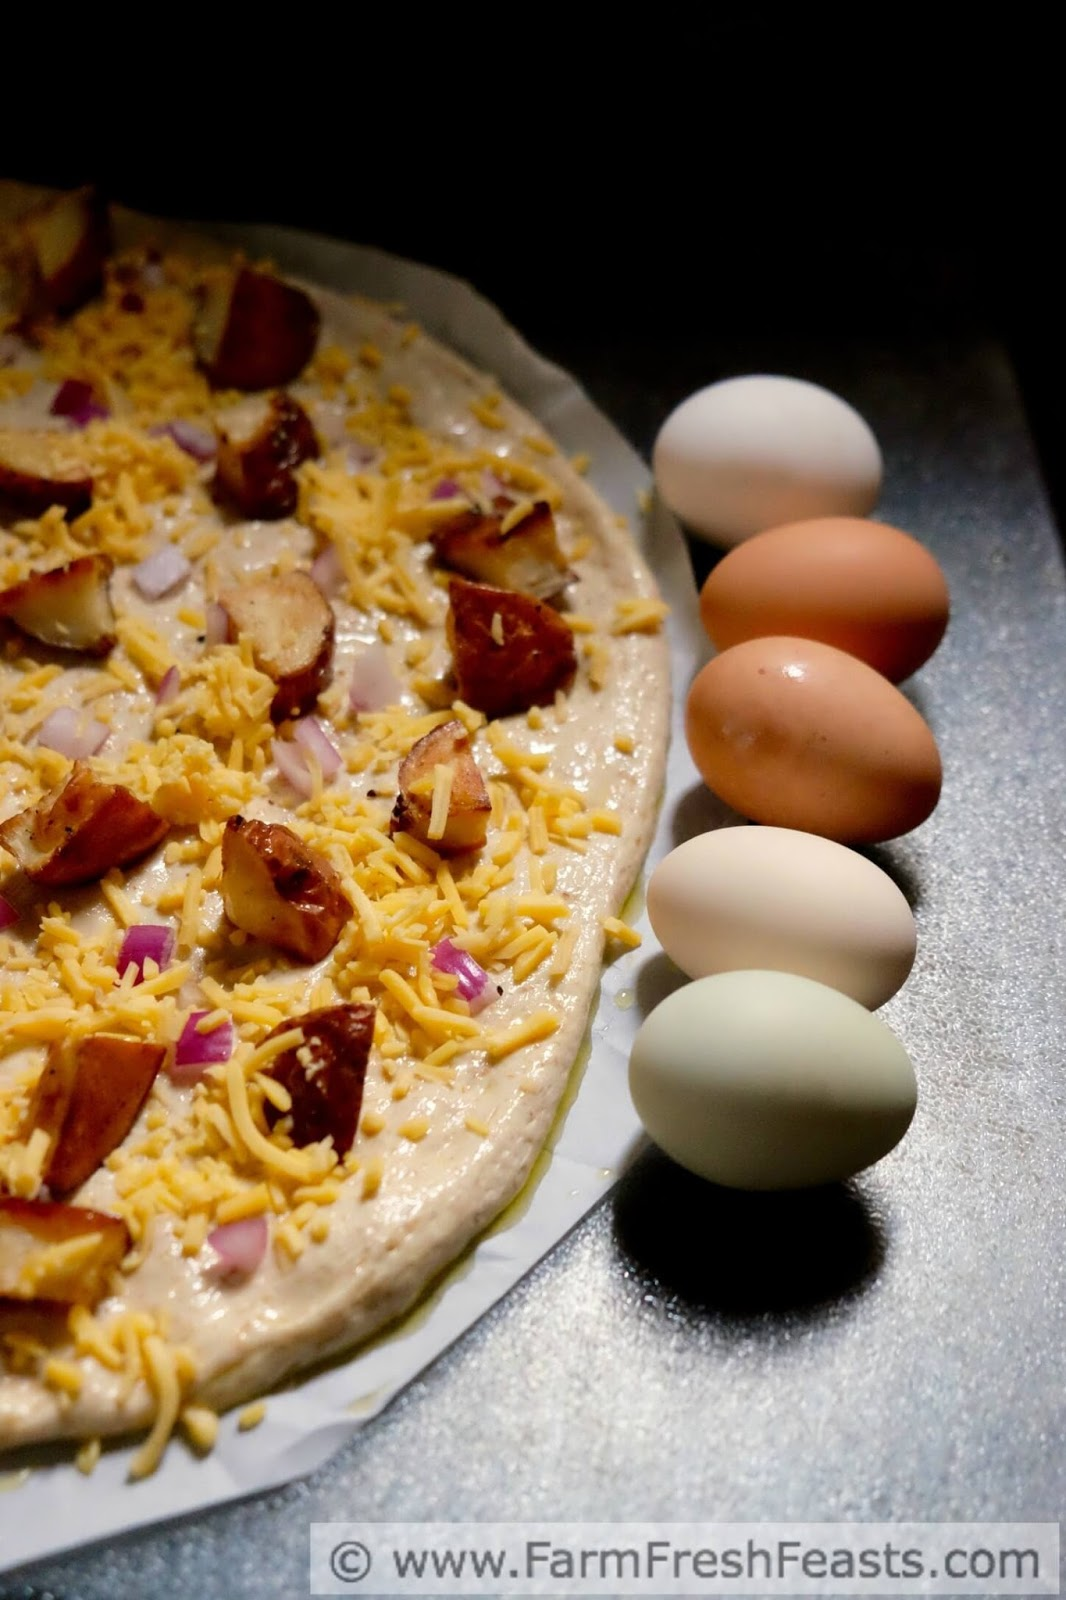 farm fresh feasts cheesy roasted potato and egg pizza